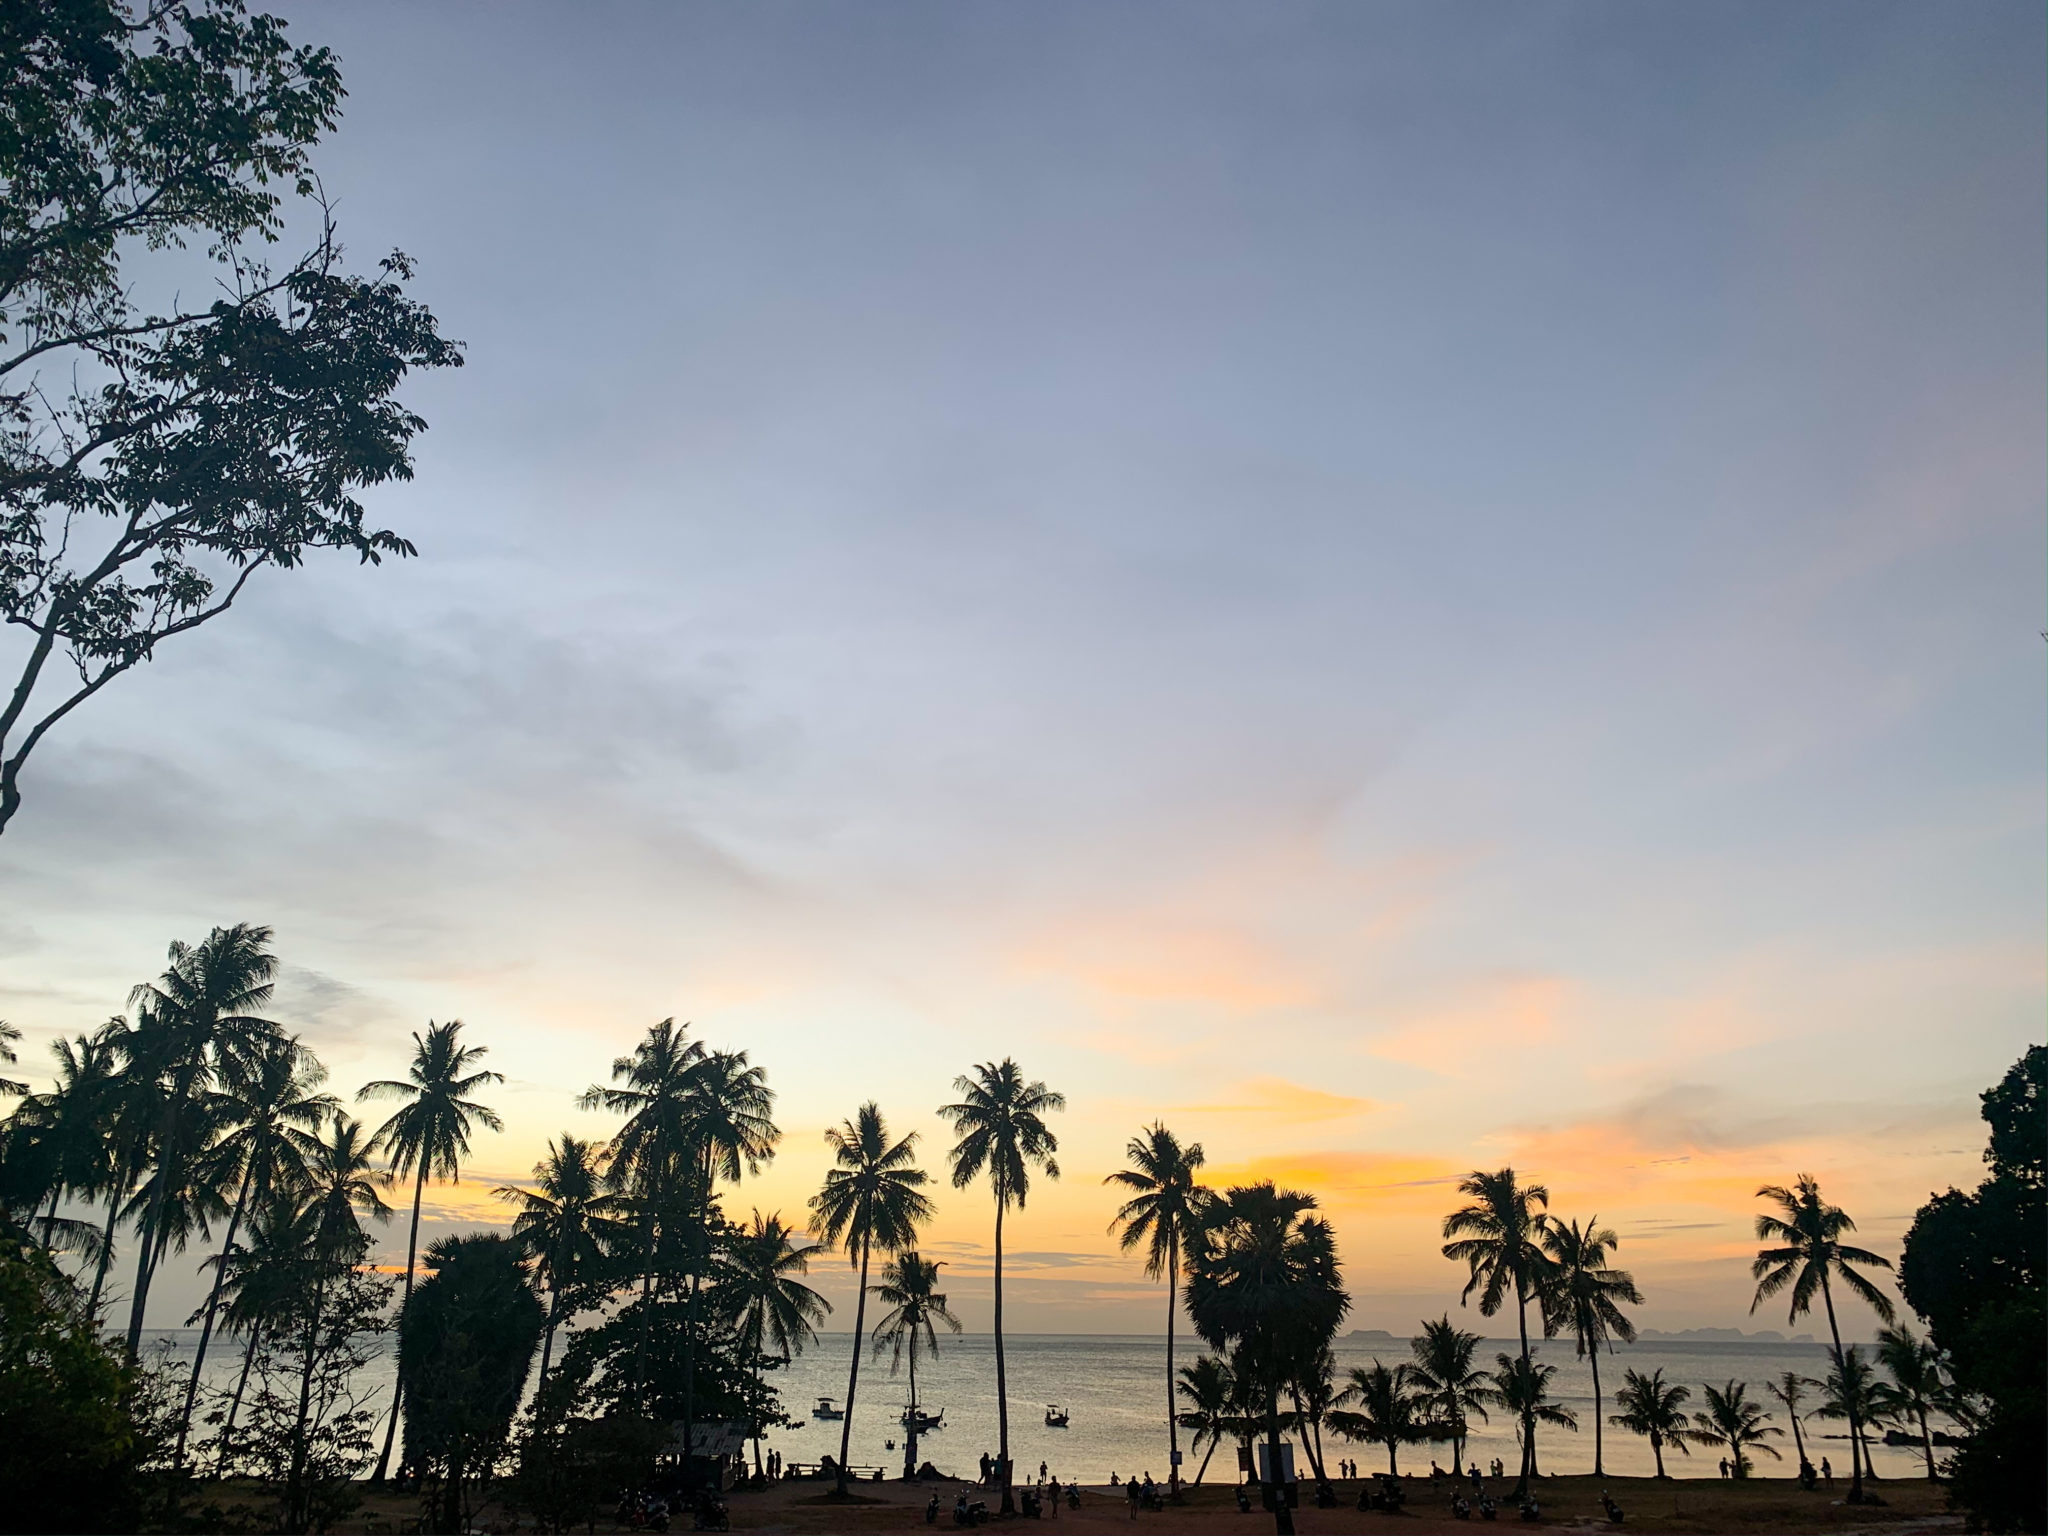 Vacation in Koh Lanta Island, Krabi, Thailand - Where to go, best beaches on Koh Lanta, best sunsets, Secret beach, Bamboo bay, Nui Bay